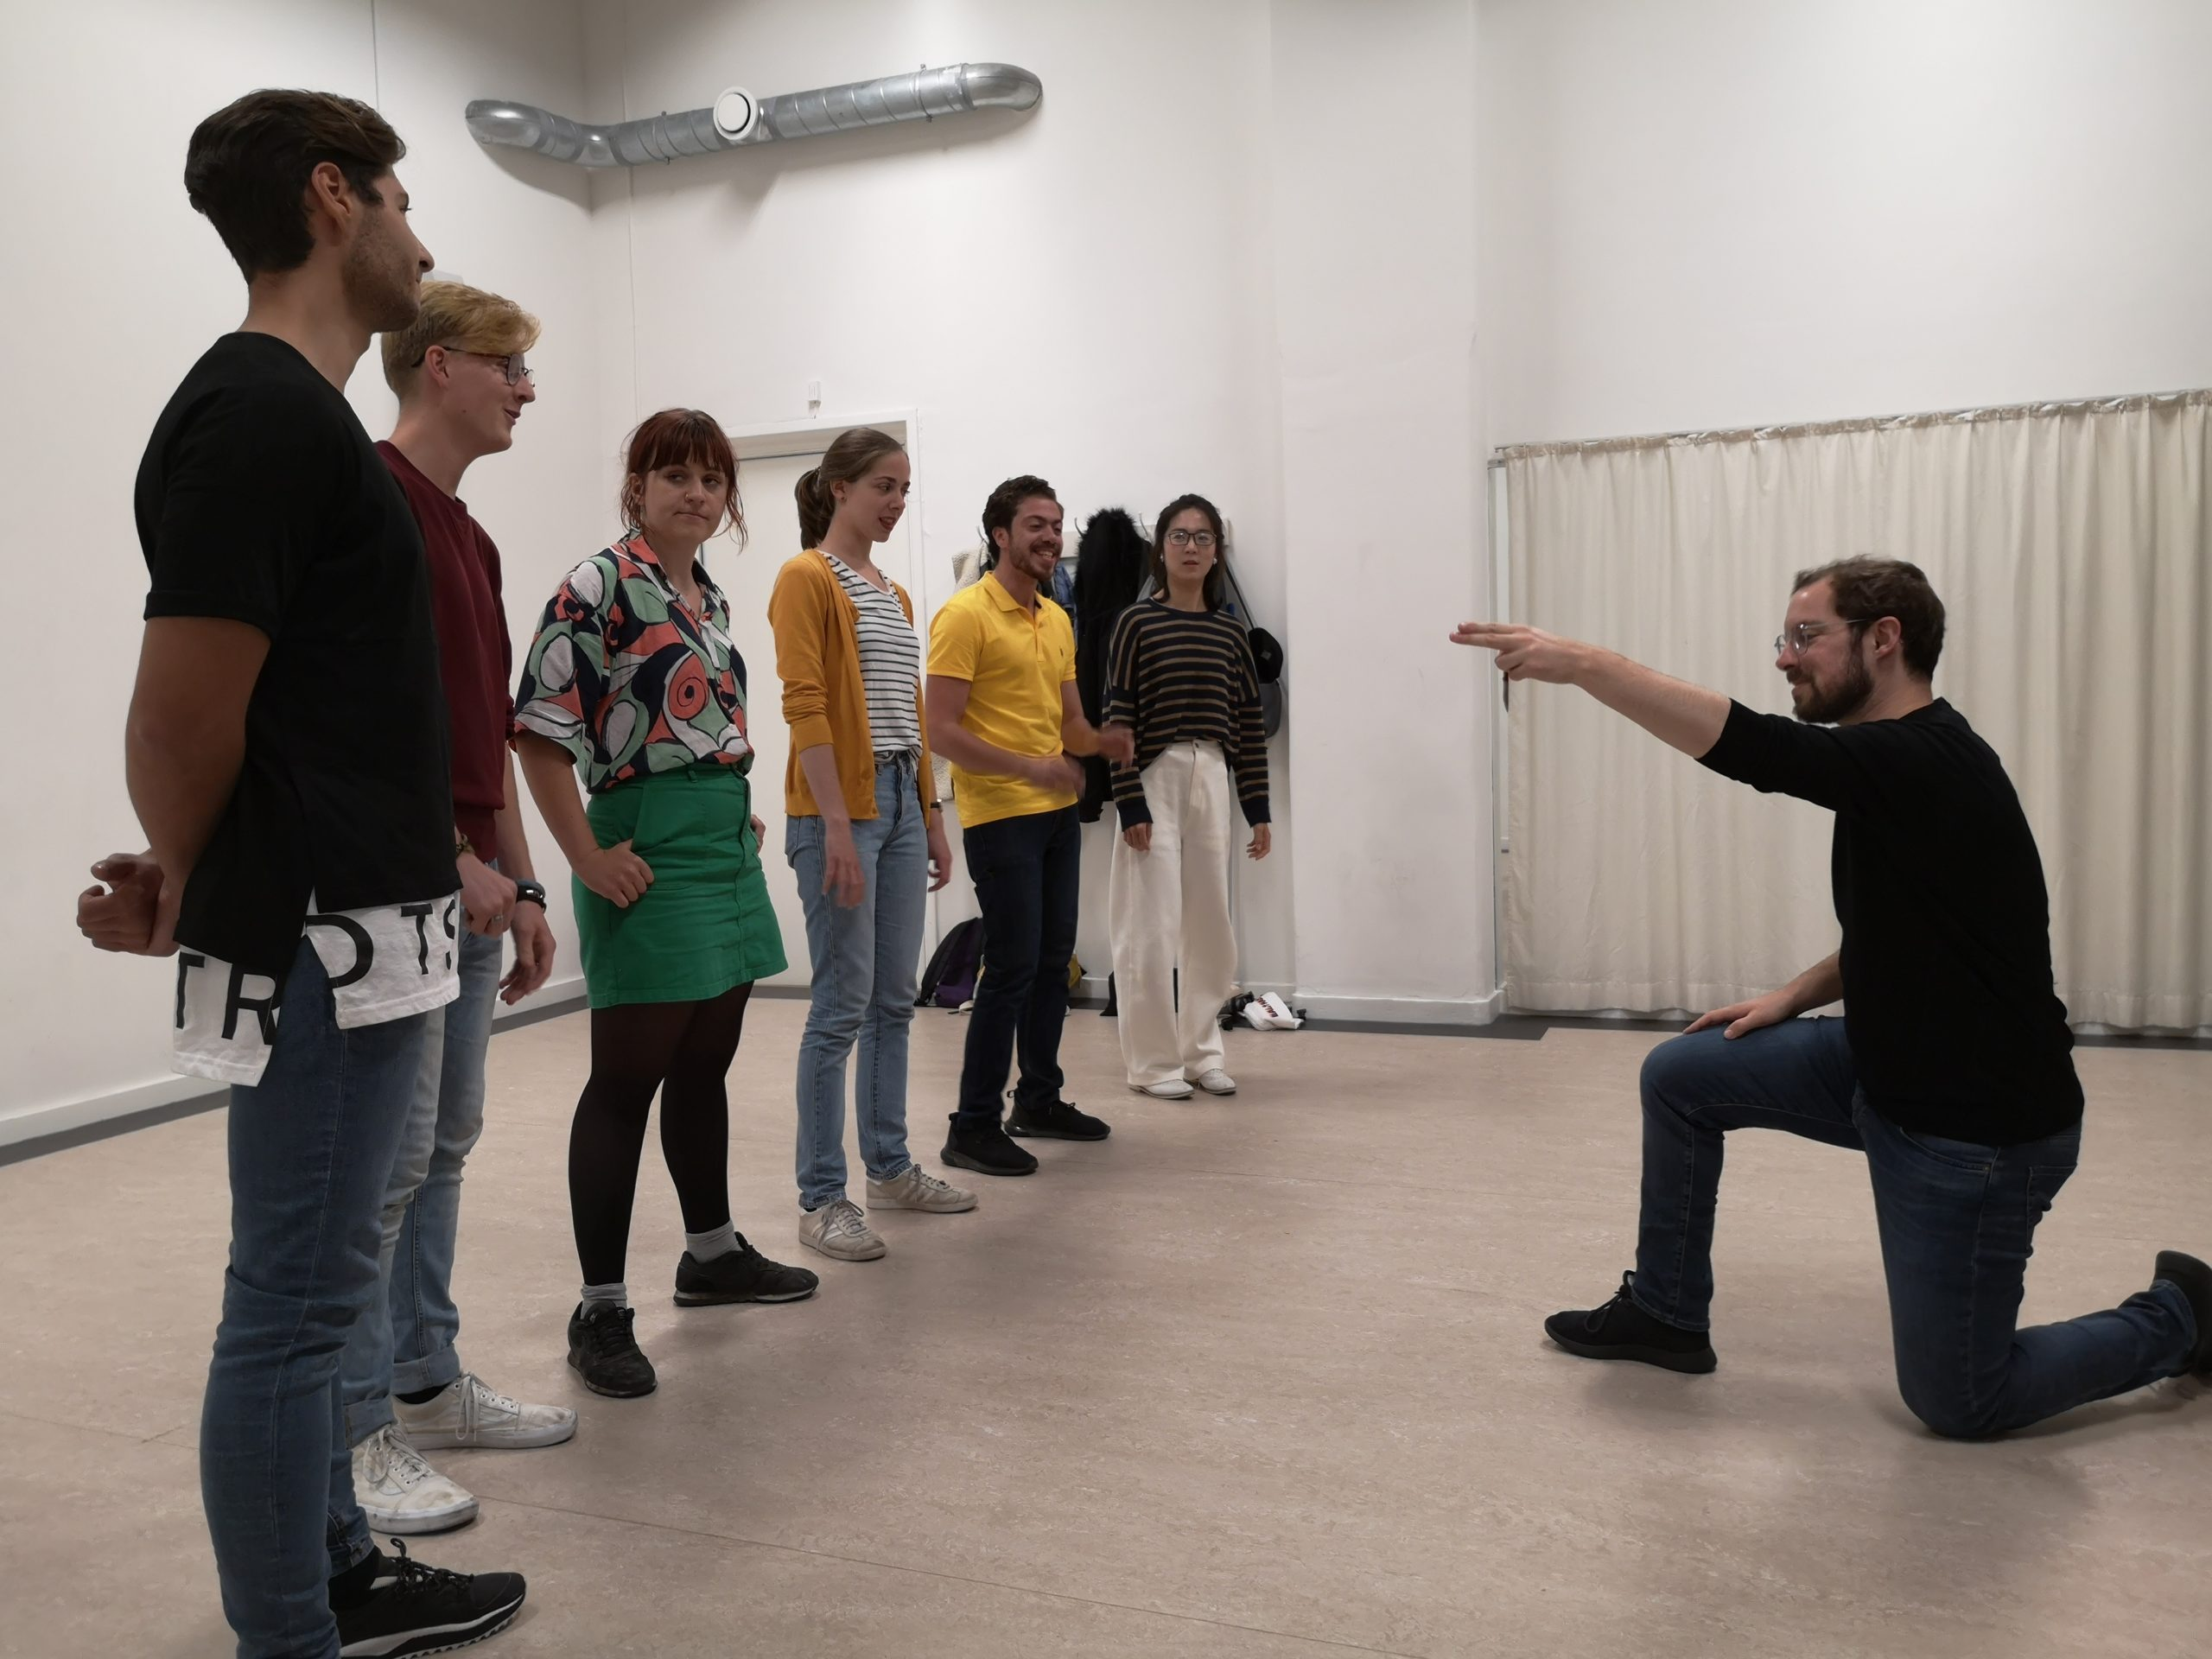 Pure improv for beginners class. A group of people stand in a row. One man is on one knee pointing one of the others, like he's holding a gun.